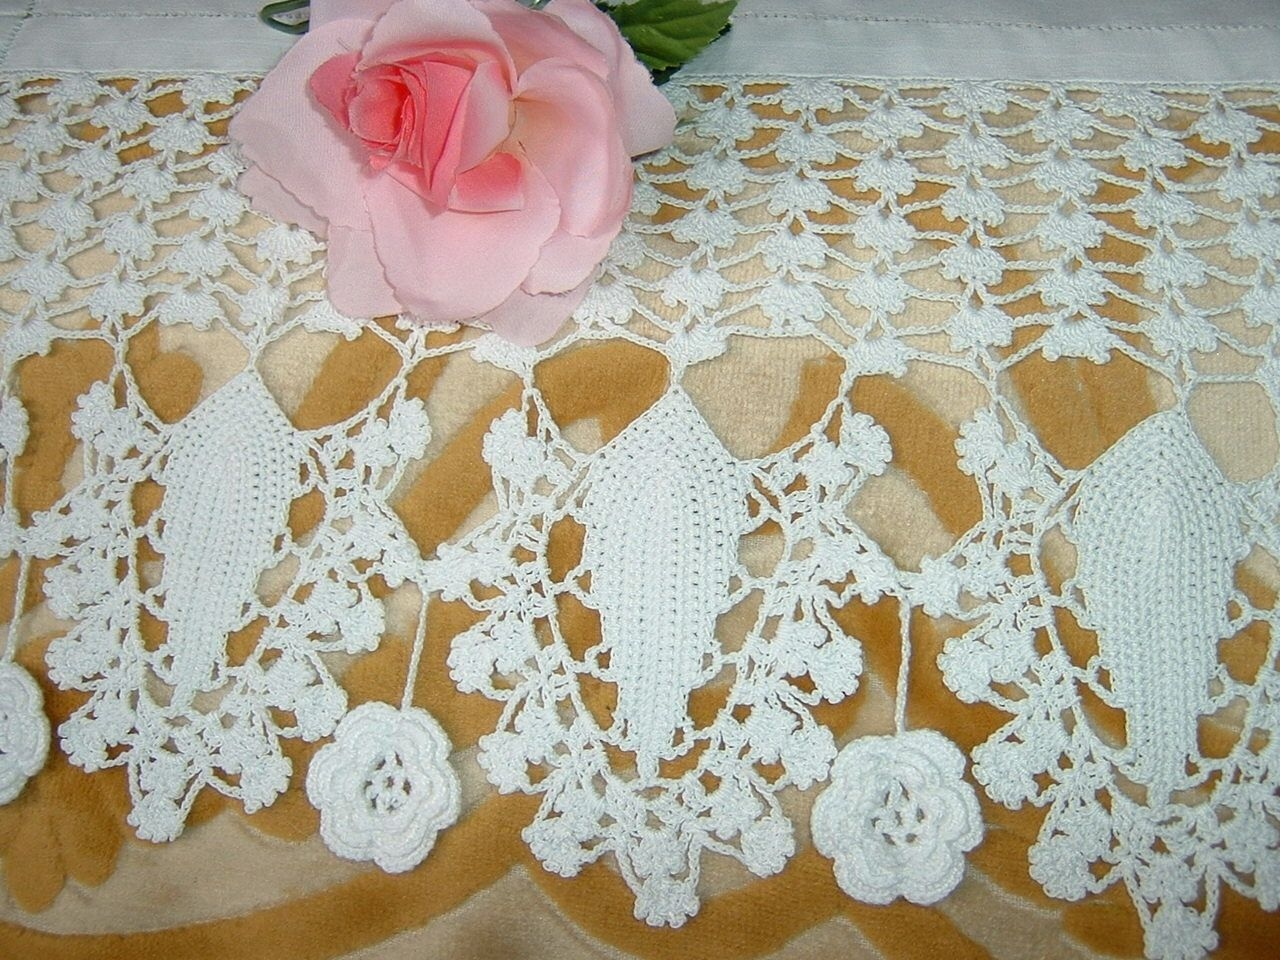 Pizzo per bordura all 39 uncinetto con foglie stilizzate e for Pizzi all uncinetto per credenze